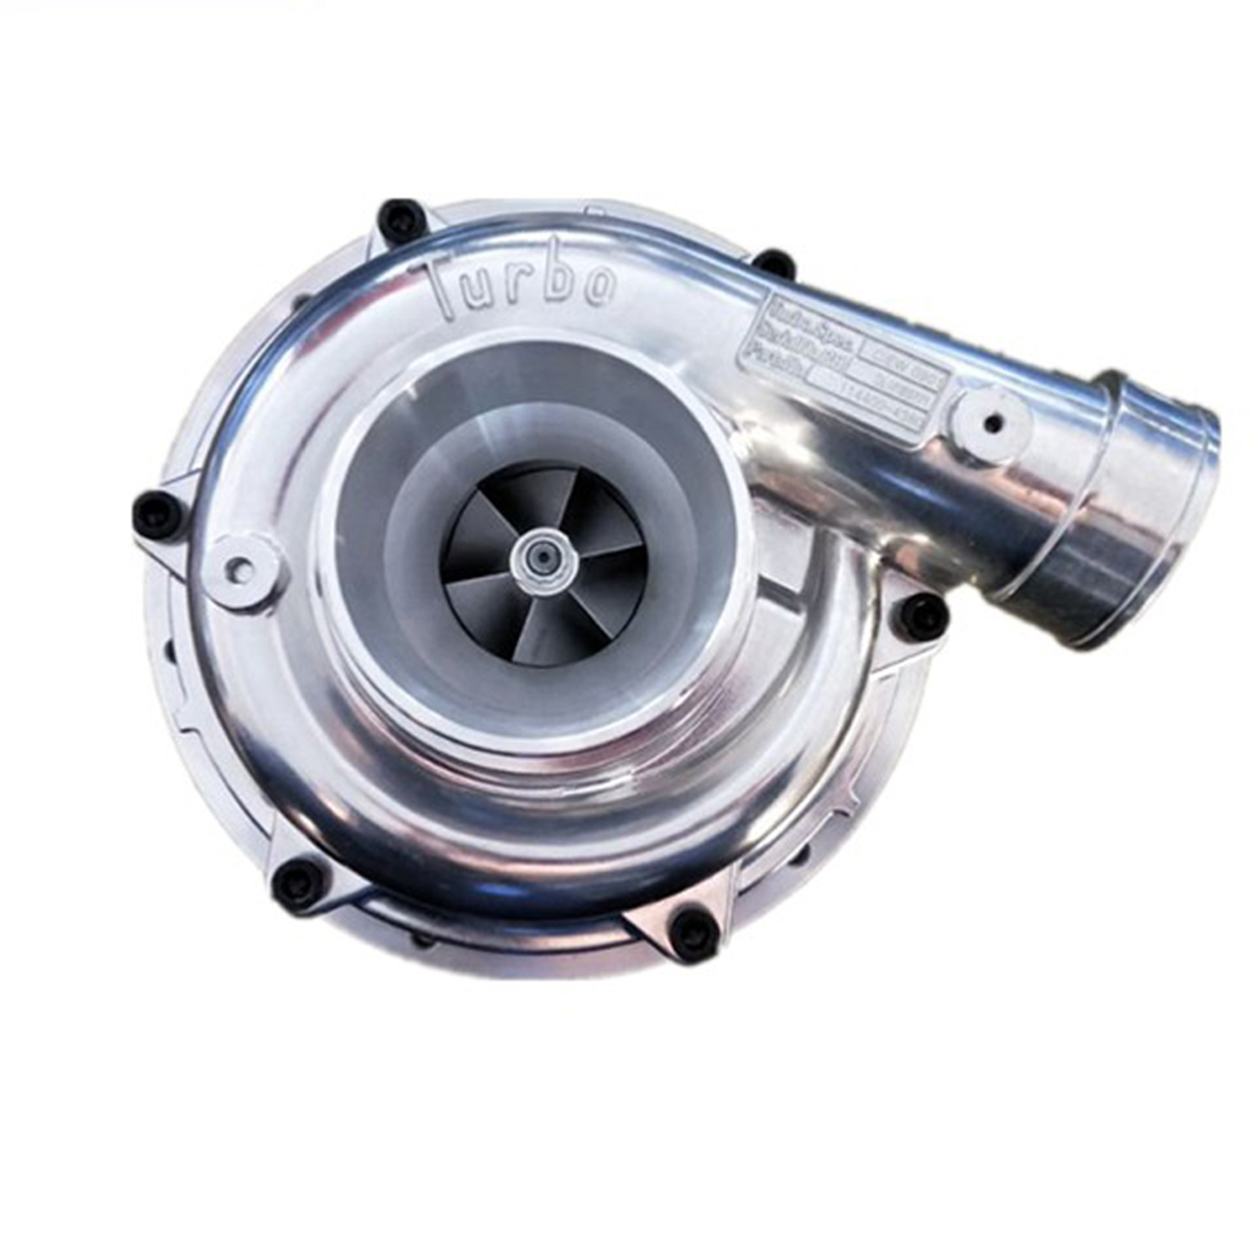 RHG6 Turbocharger VA570090 for Hitachi